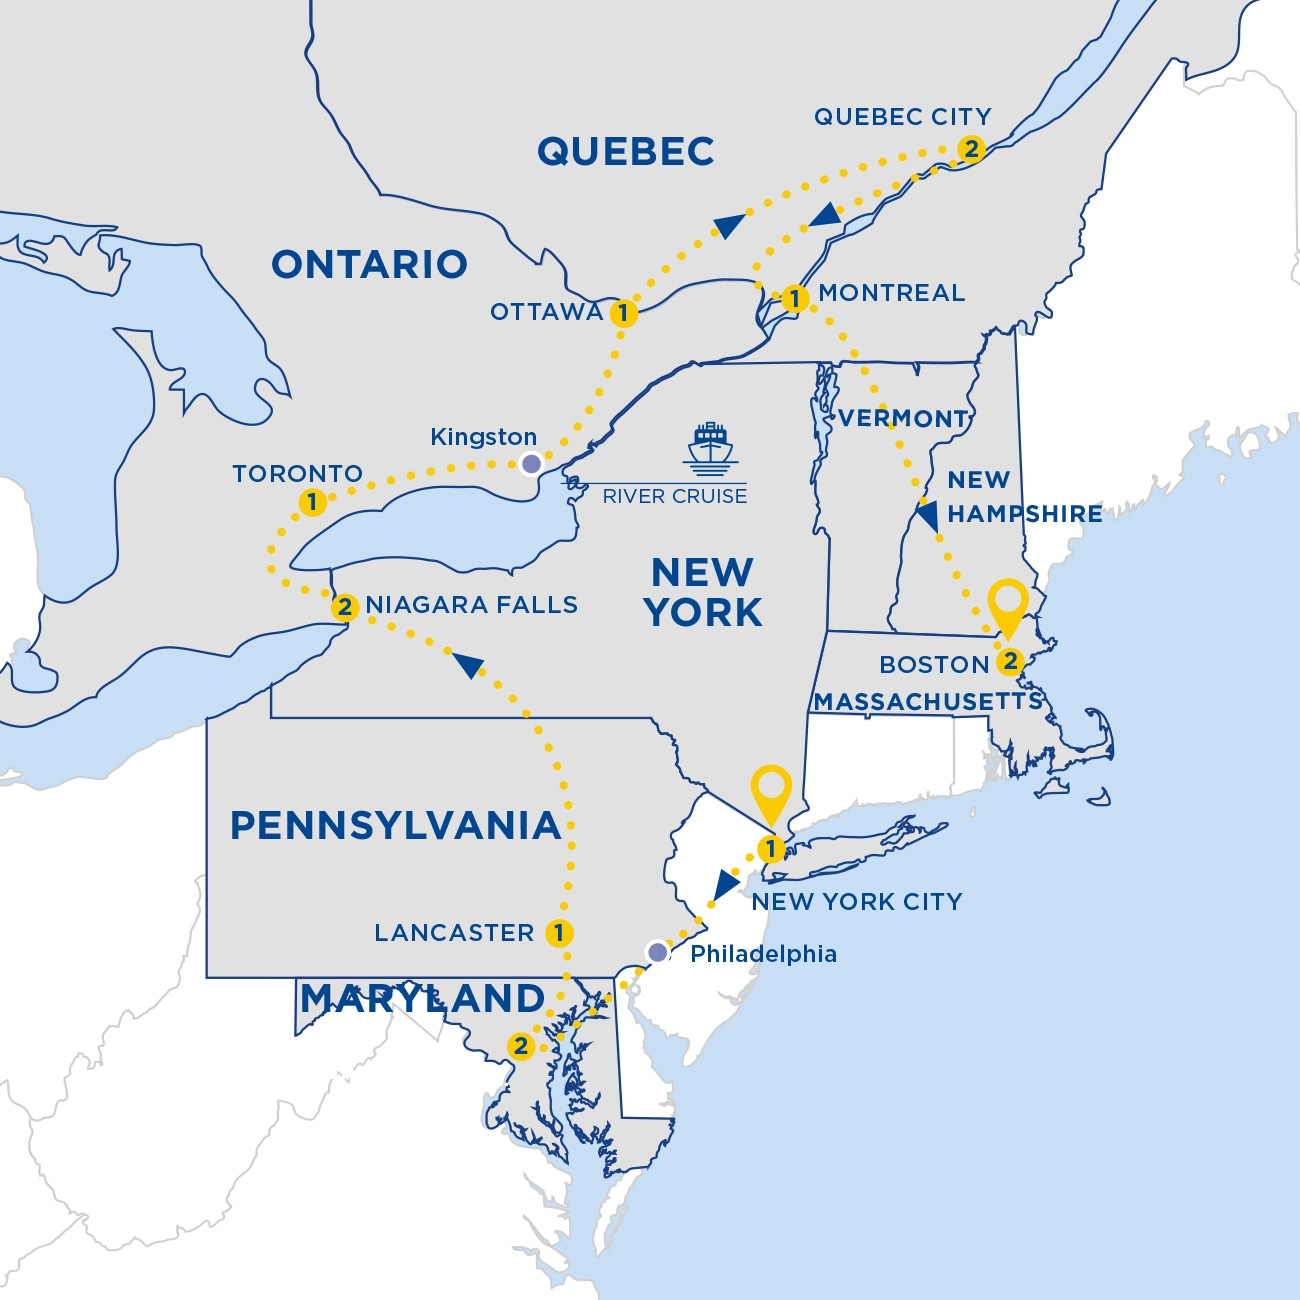 Map Of Eastern Canada And Usa.Landscapes Of Eastern Canada And Usa End New York Summer 2020